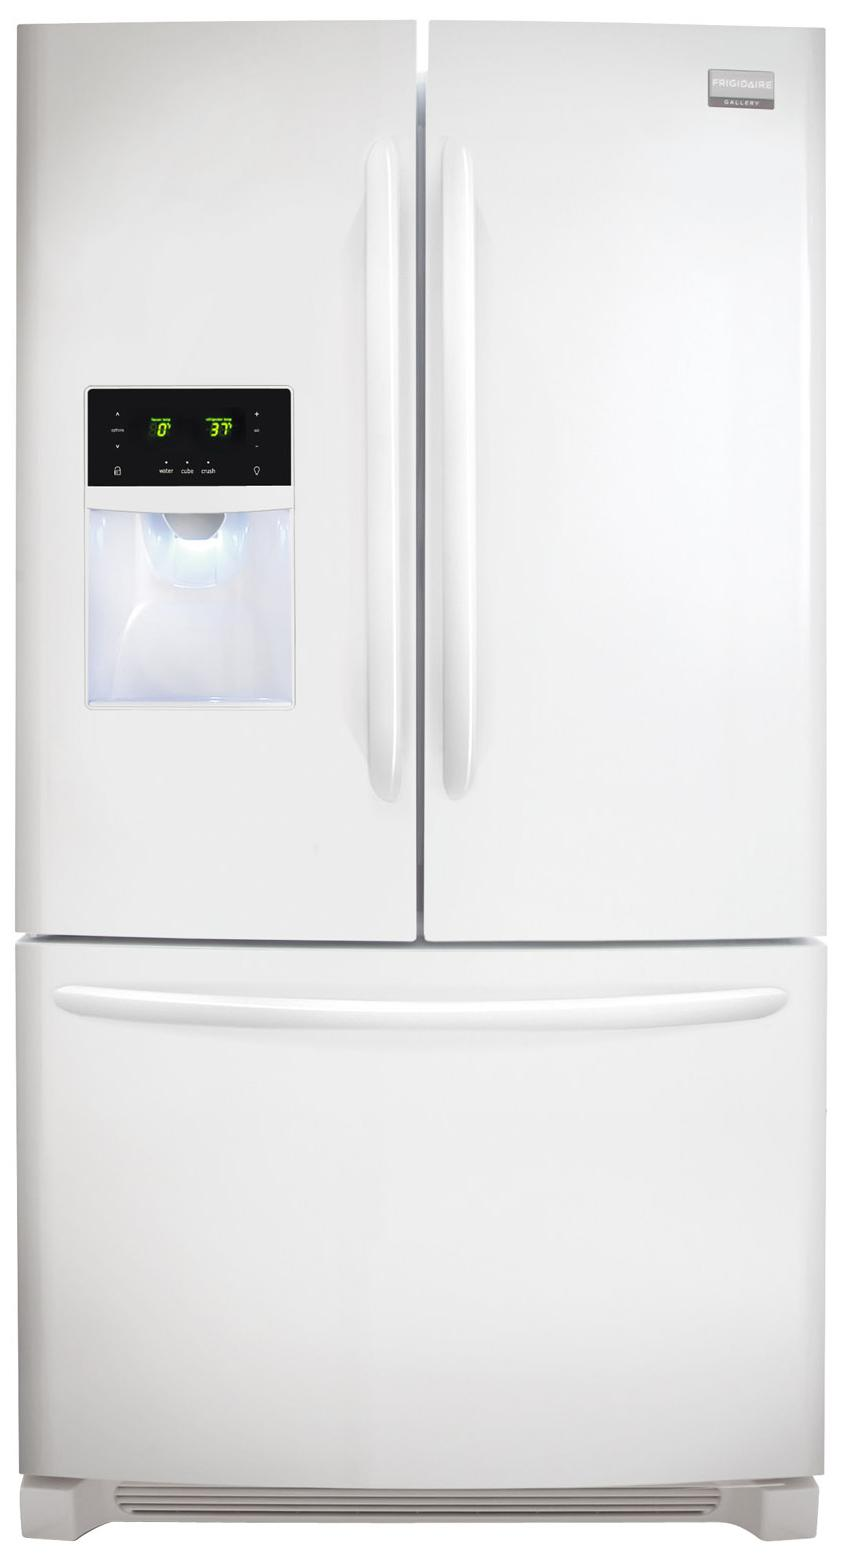 Frigidaire Frigidaire Gallery Refrigerators 27.8 Cu. Ft. French Door Refrigerator - Item Number: FGHB2866PP